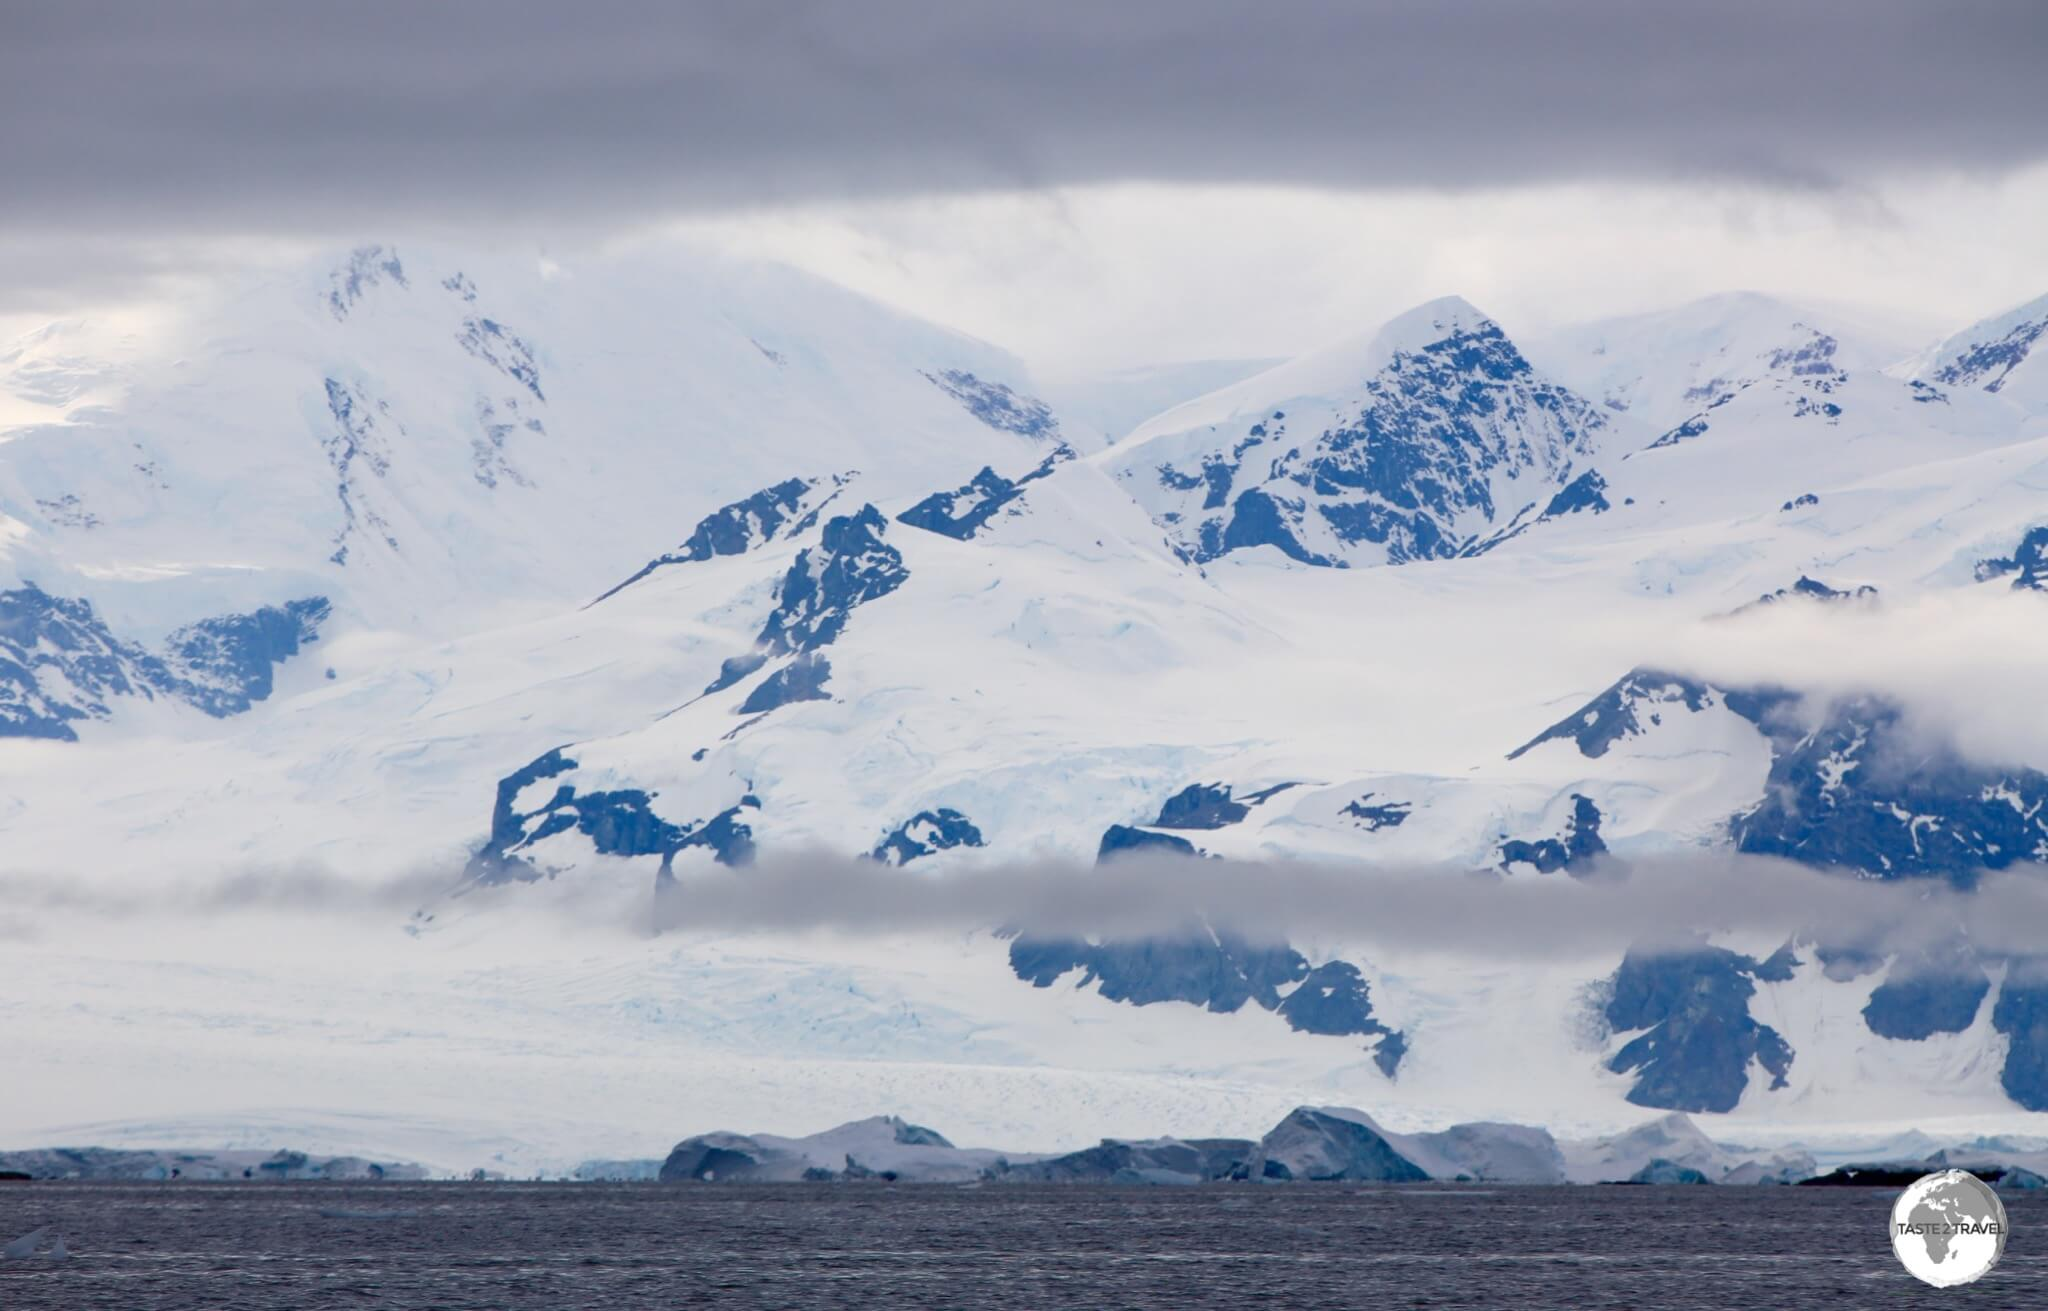 Majestic peaks line the shores of Crystal Sound, Antarctica.